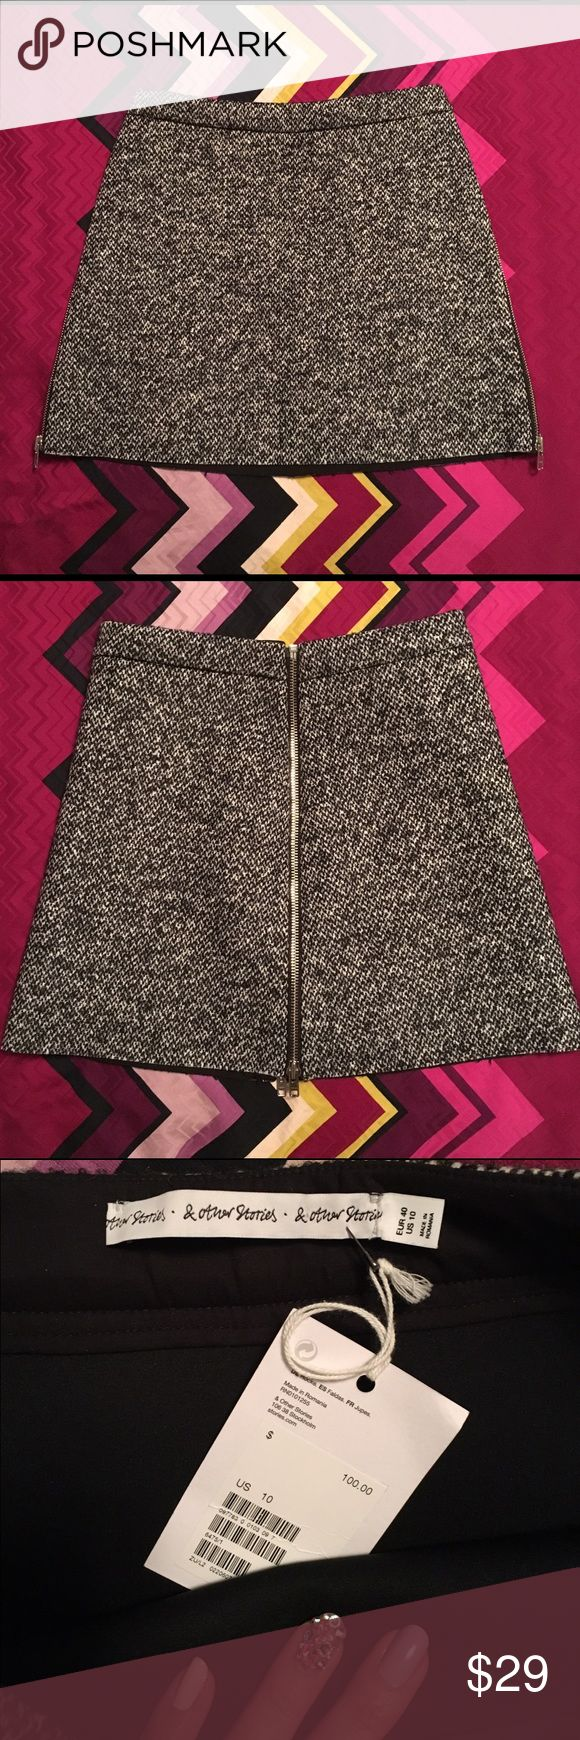 """& Other Stories wool tweed zip mini skirt NWT &Other Stories Eur 40/US 10 Contemporary brand affiliated with H&M...super cute tweed mini that is bonded with scuba fabric on the inside.  Side zips go all the way up to the waist in silver nickel for easy access!  Can also be worn with zippers up the center front and back.  Great fall/winter addition to any wardrobe.  18"""" total length, 29-30"""" waist & Other Stories Skirts Mini"""